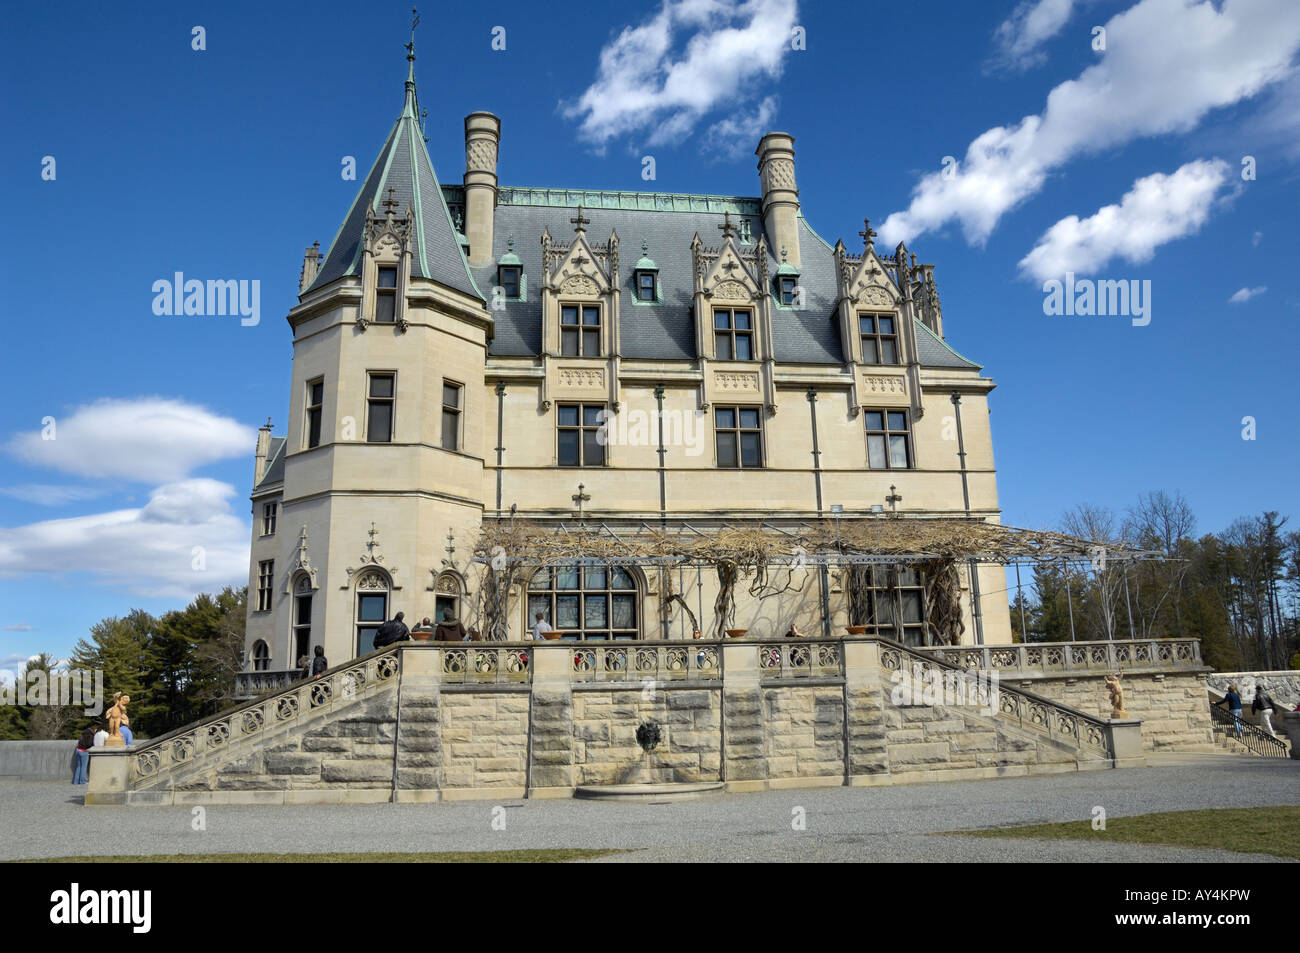 Stay on Biltmore Estate. Vacation like a family friend of the Vanderbilts at our convenient Village Hotel, elegant Inn, or our charming Cottage, comprising the lodgings of Biltmore.